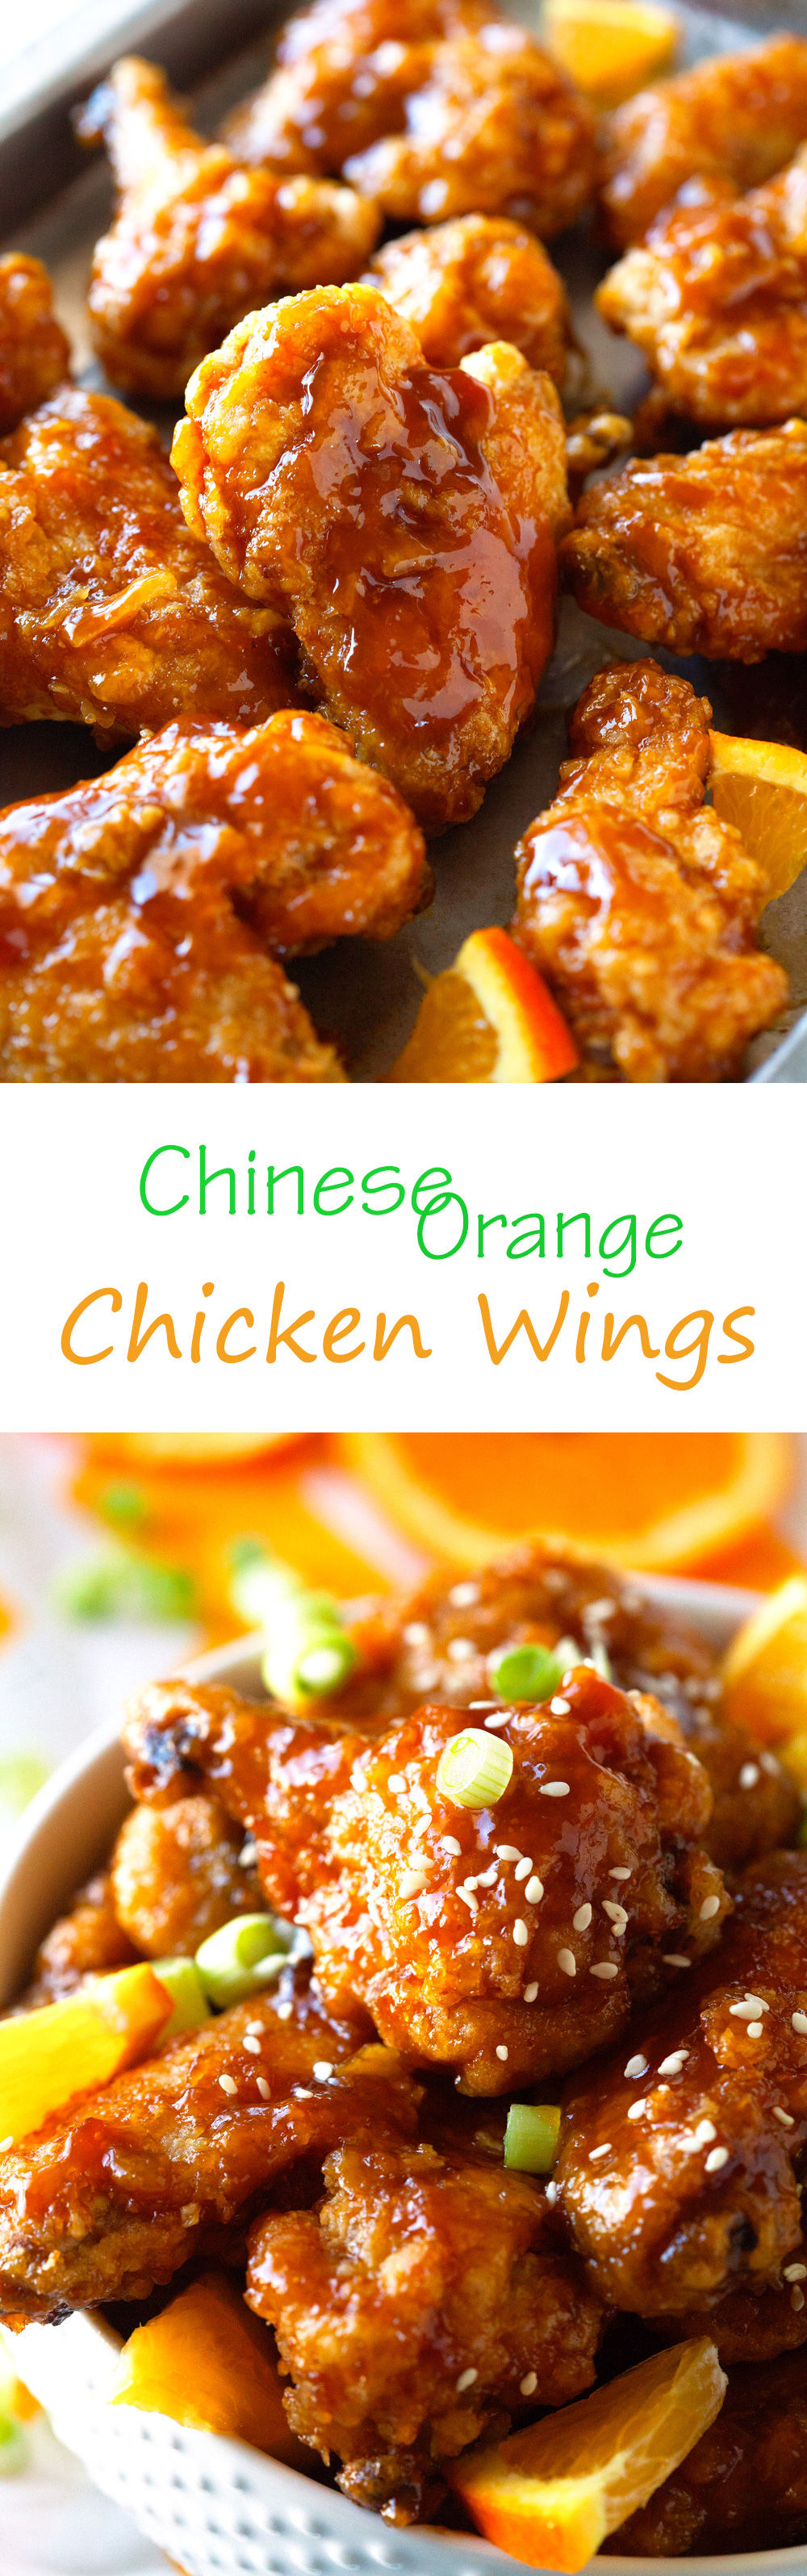 chinese-orange-chicken-wings